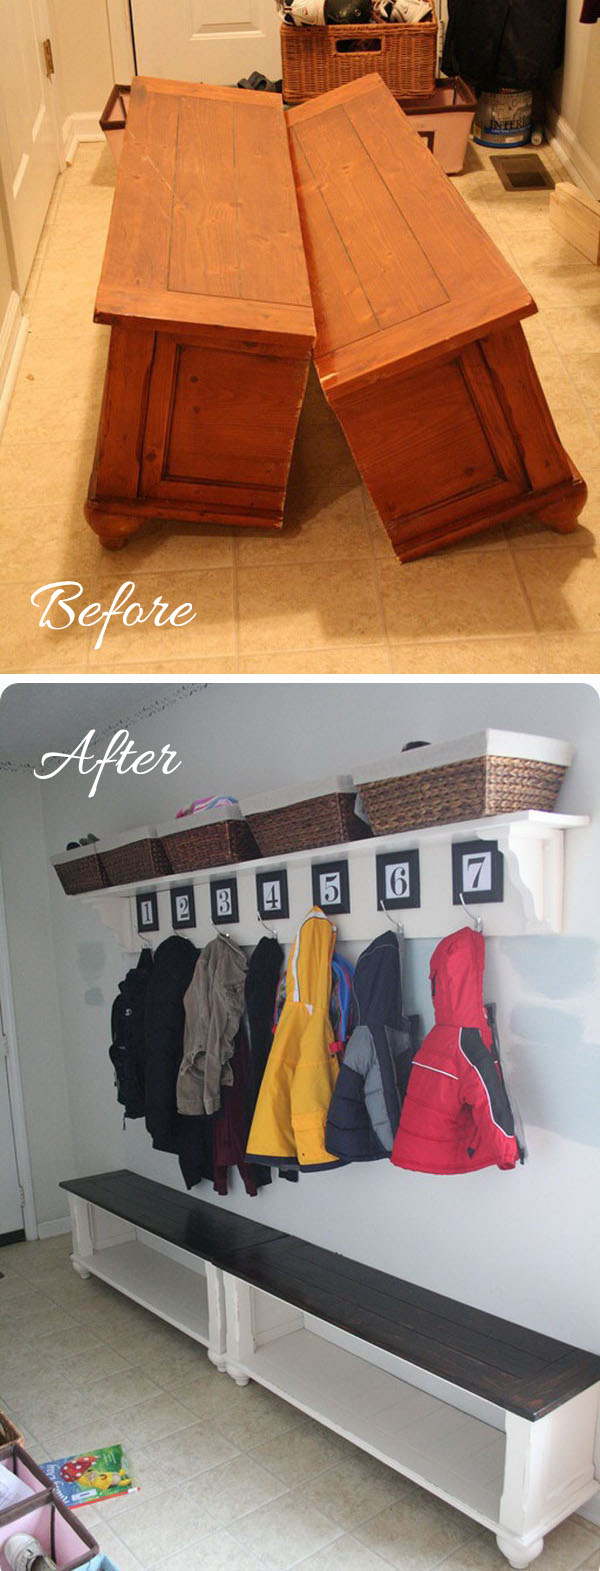 Mudroom Entryway Makeover with an Old Coffee Table Turned Bench.